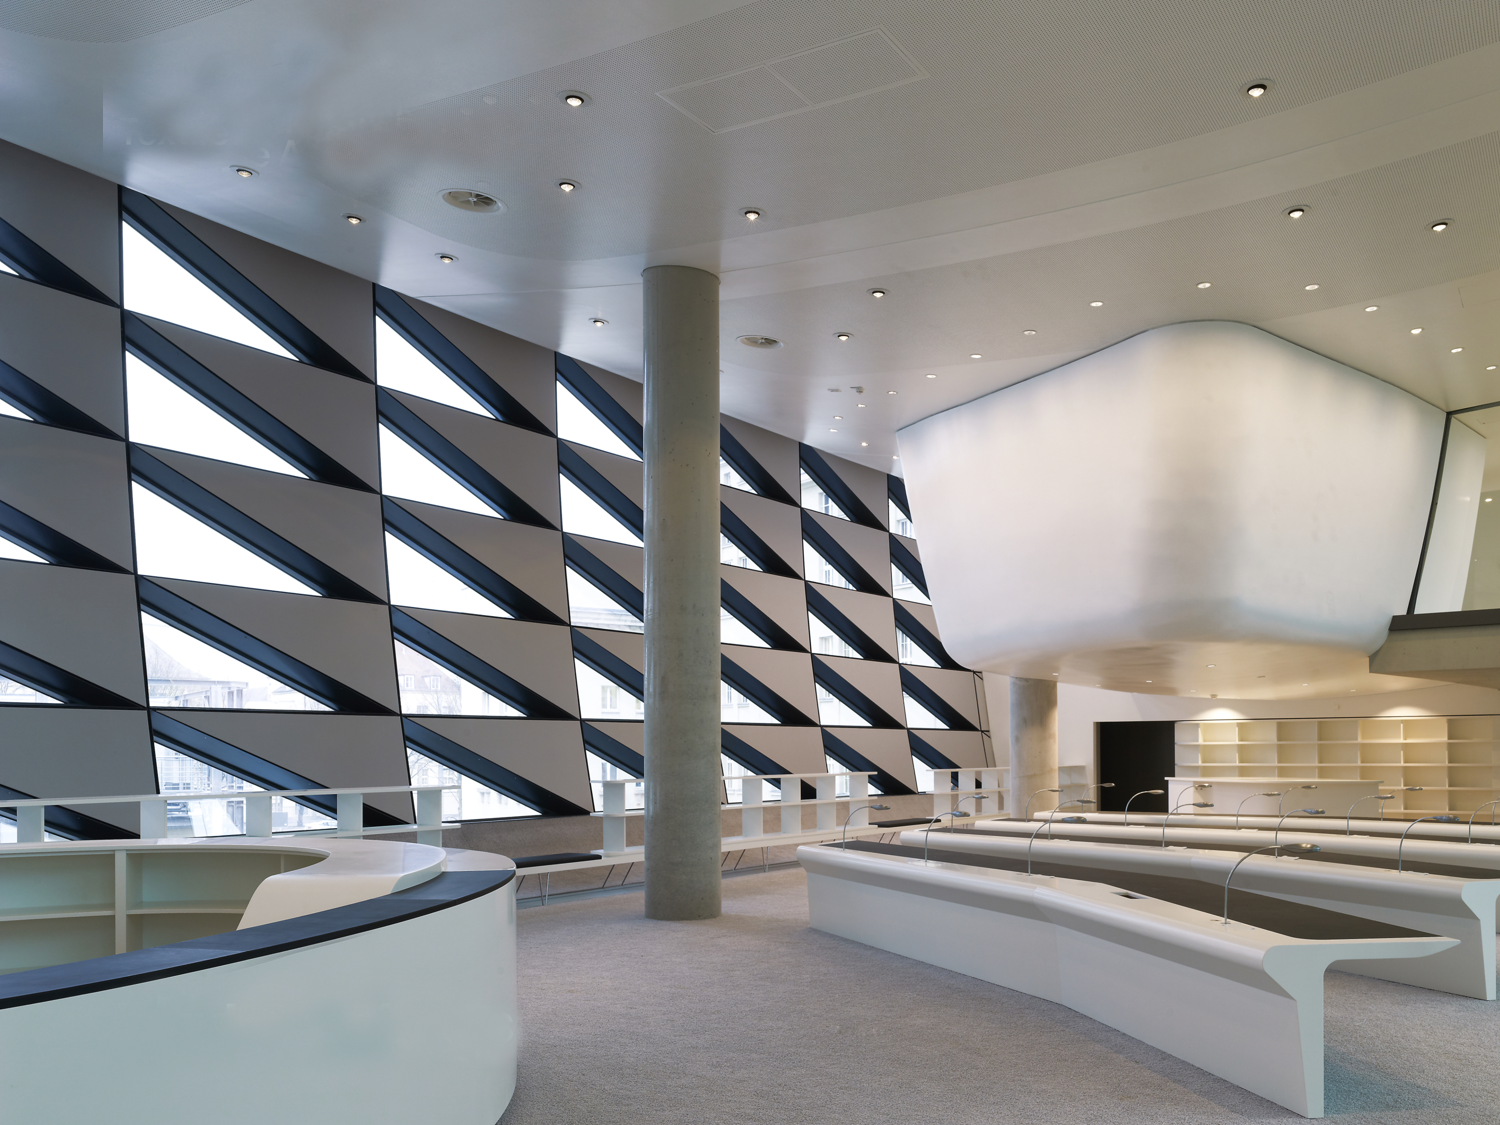 Dry Lining Trims Suspended Ceiling Partitioning